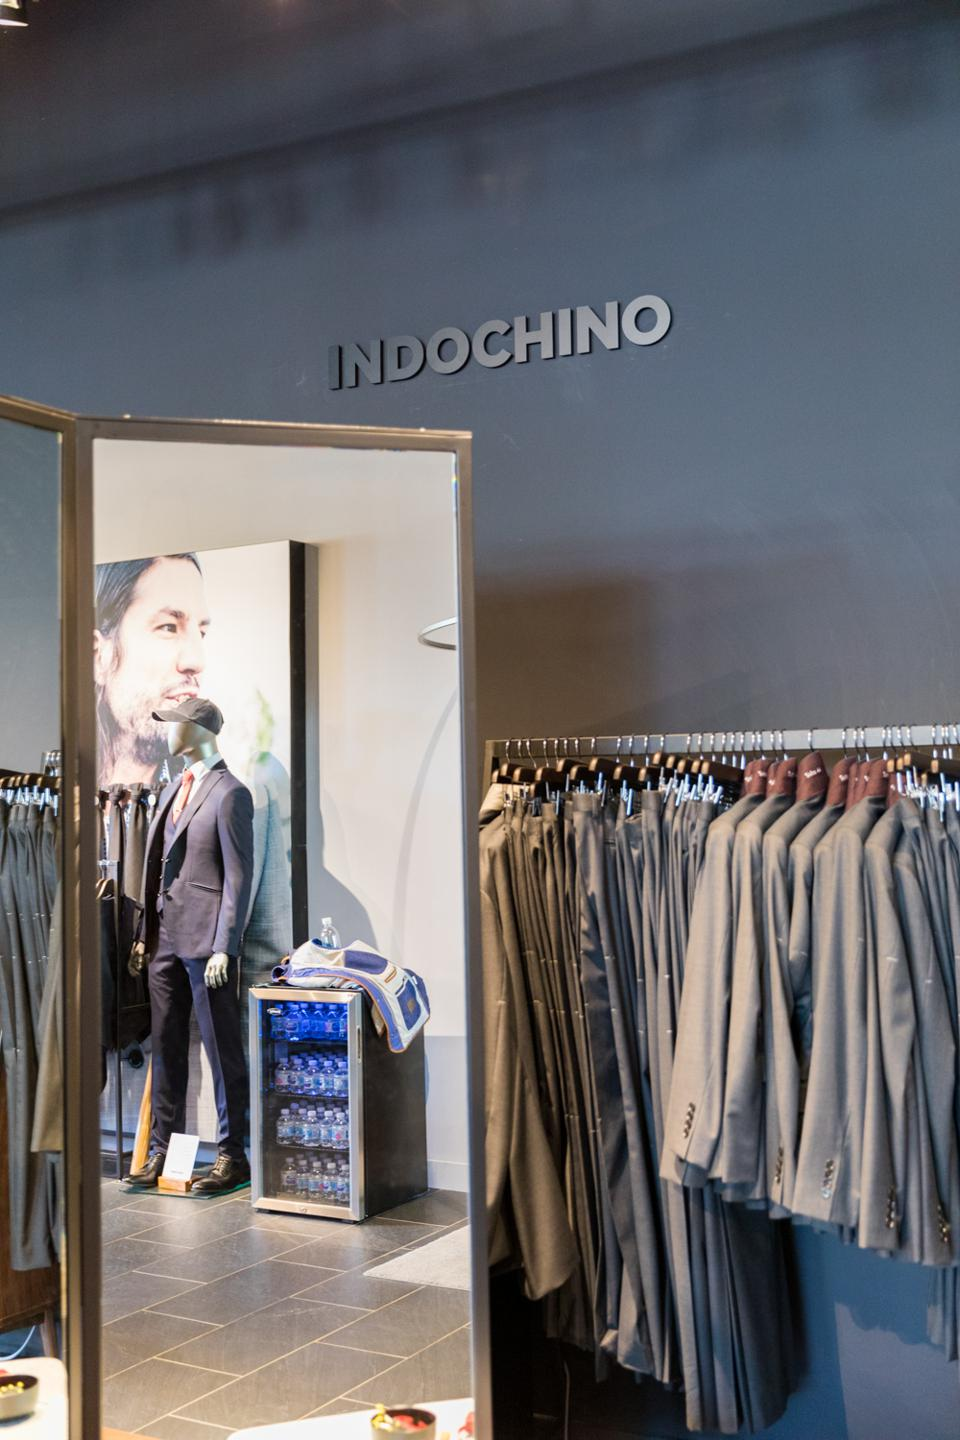 BOSTON, MA - The Indochino in Boston's Seaport